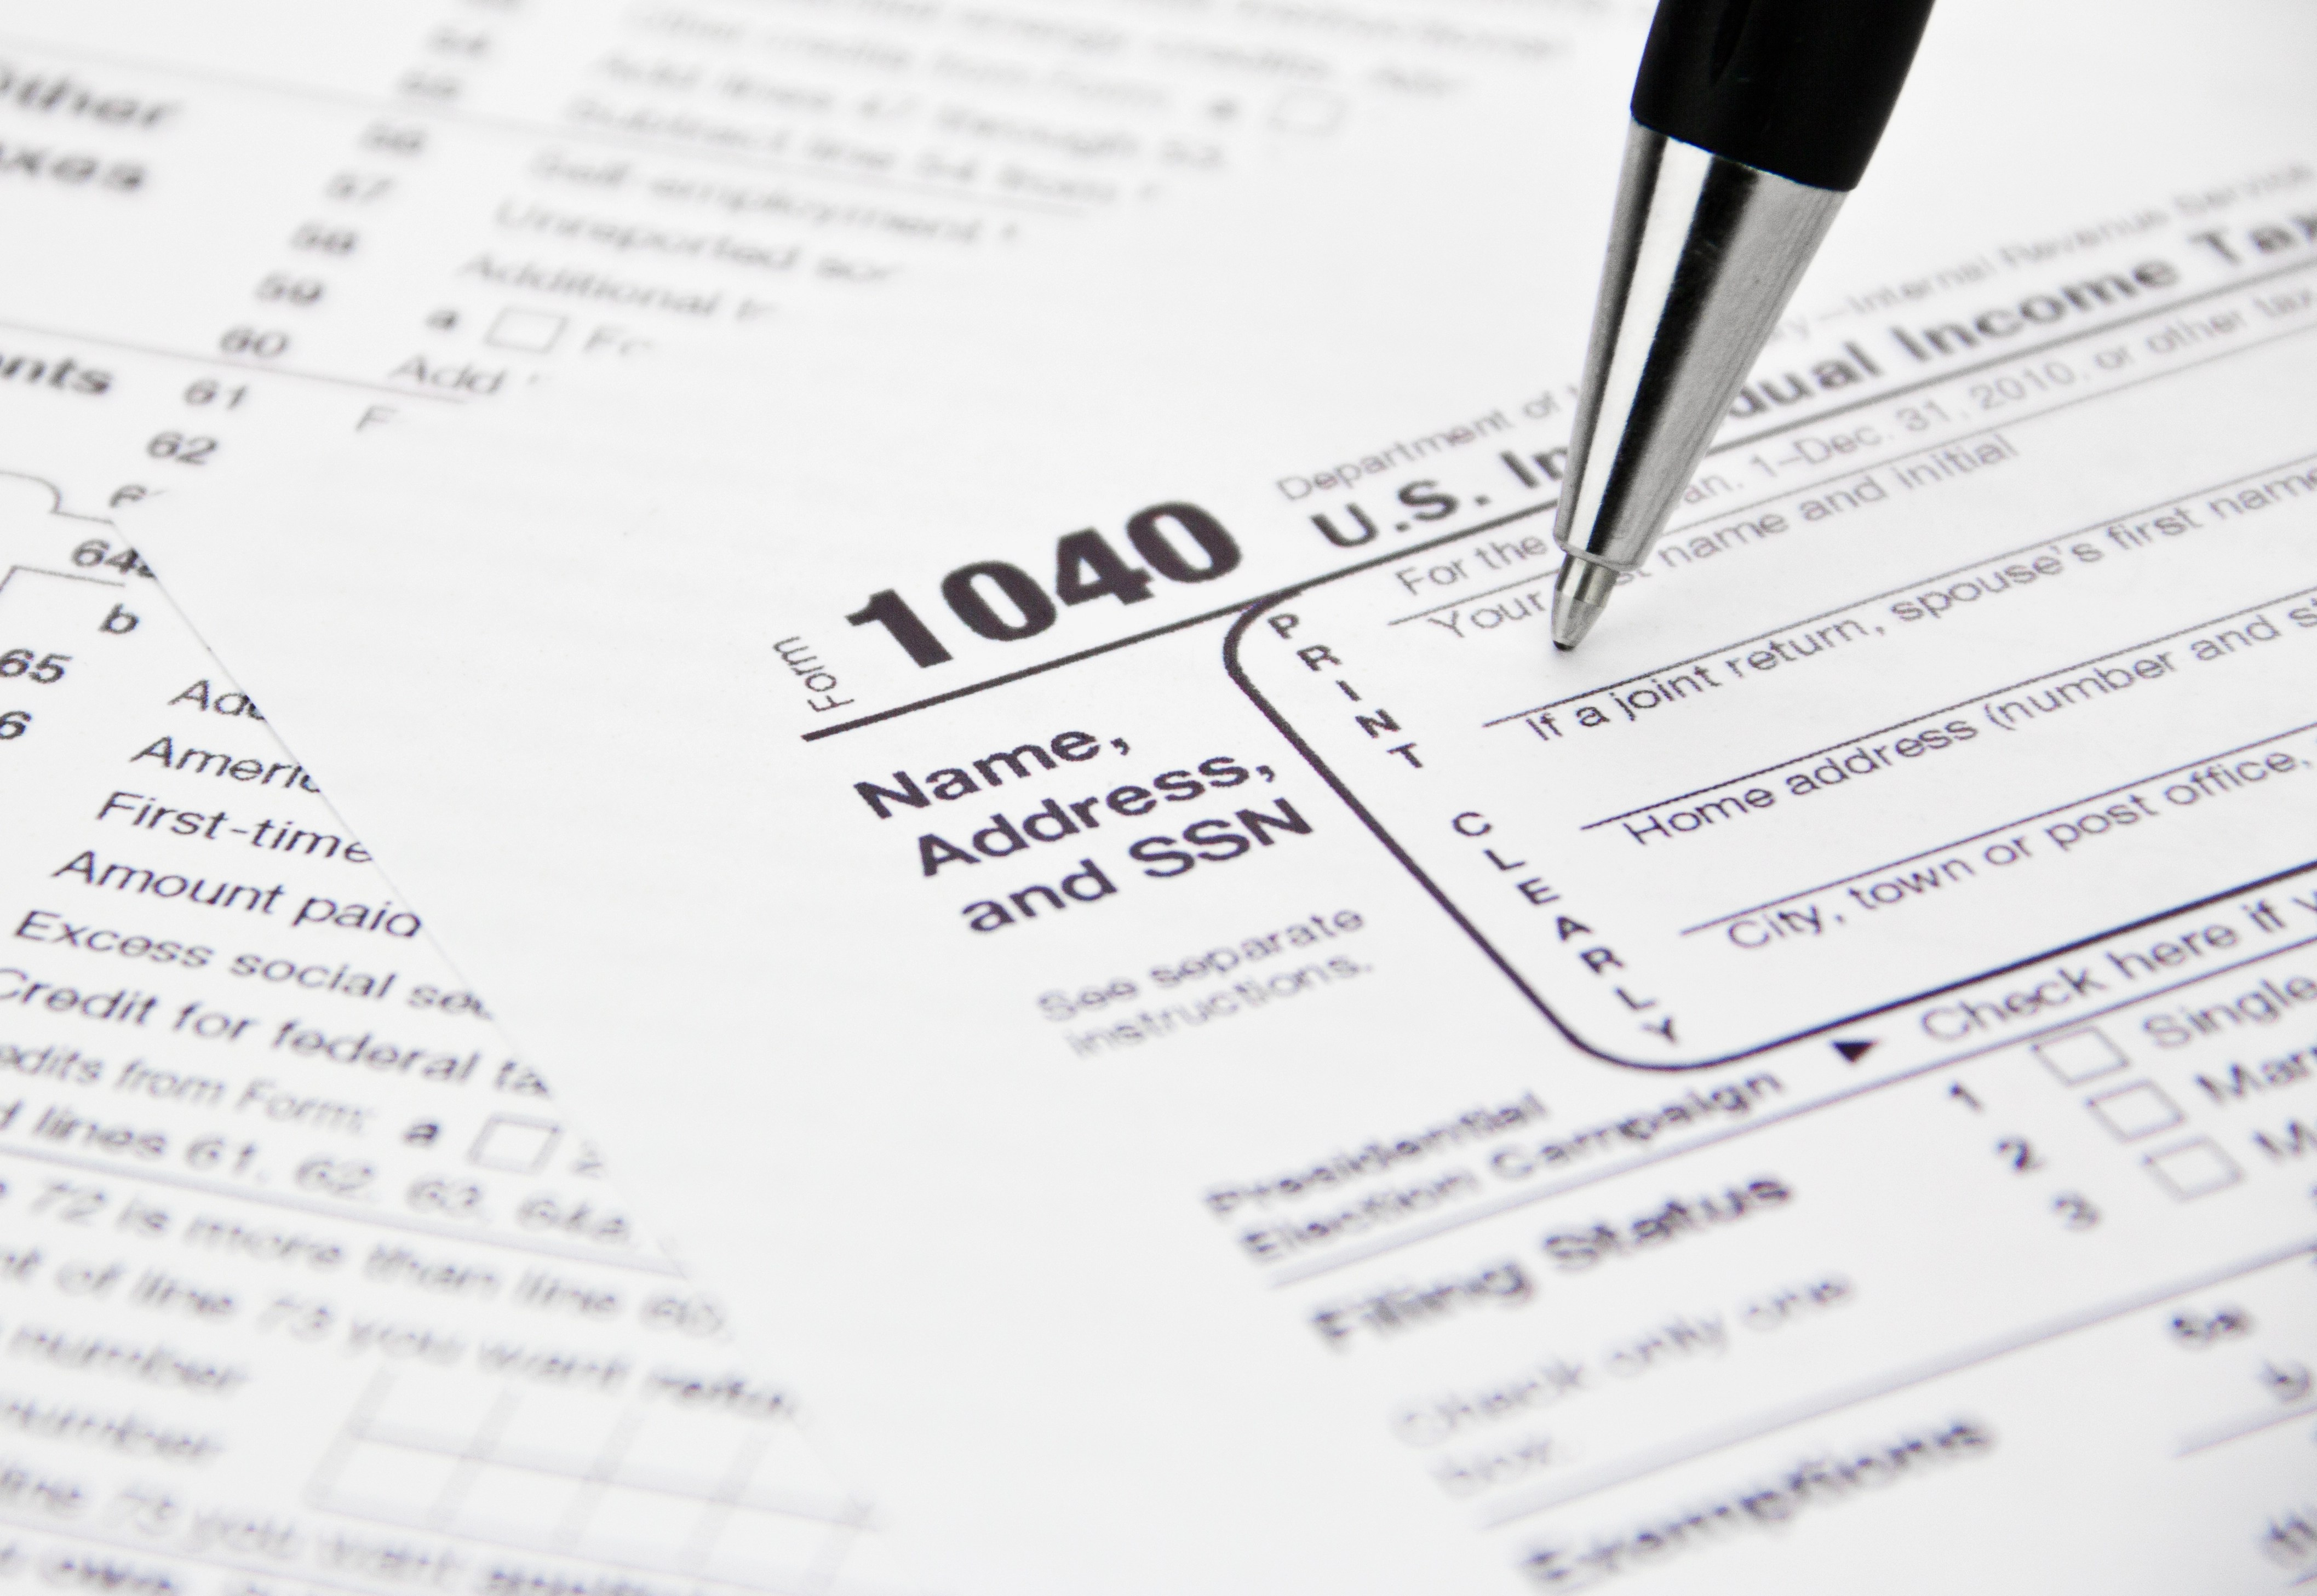 Tax season 2018: Go ahead and mark down these important